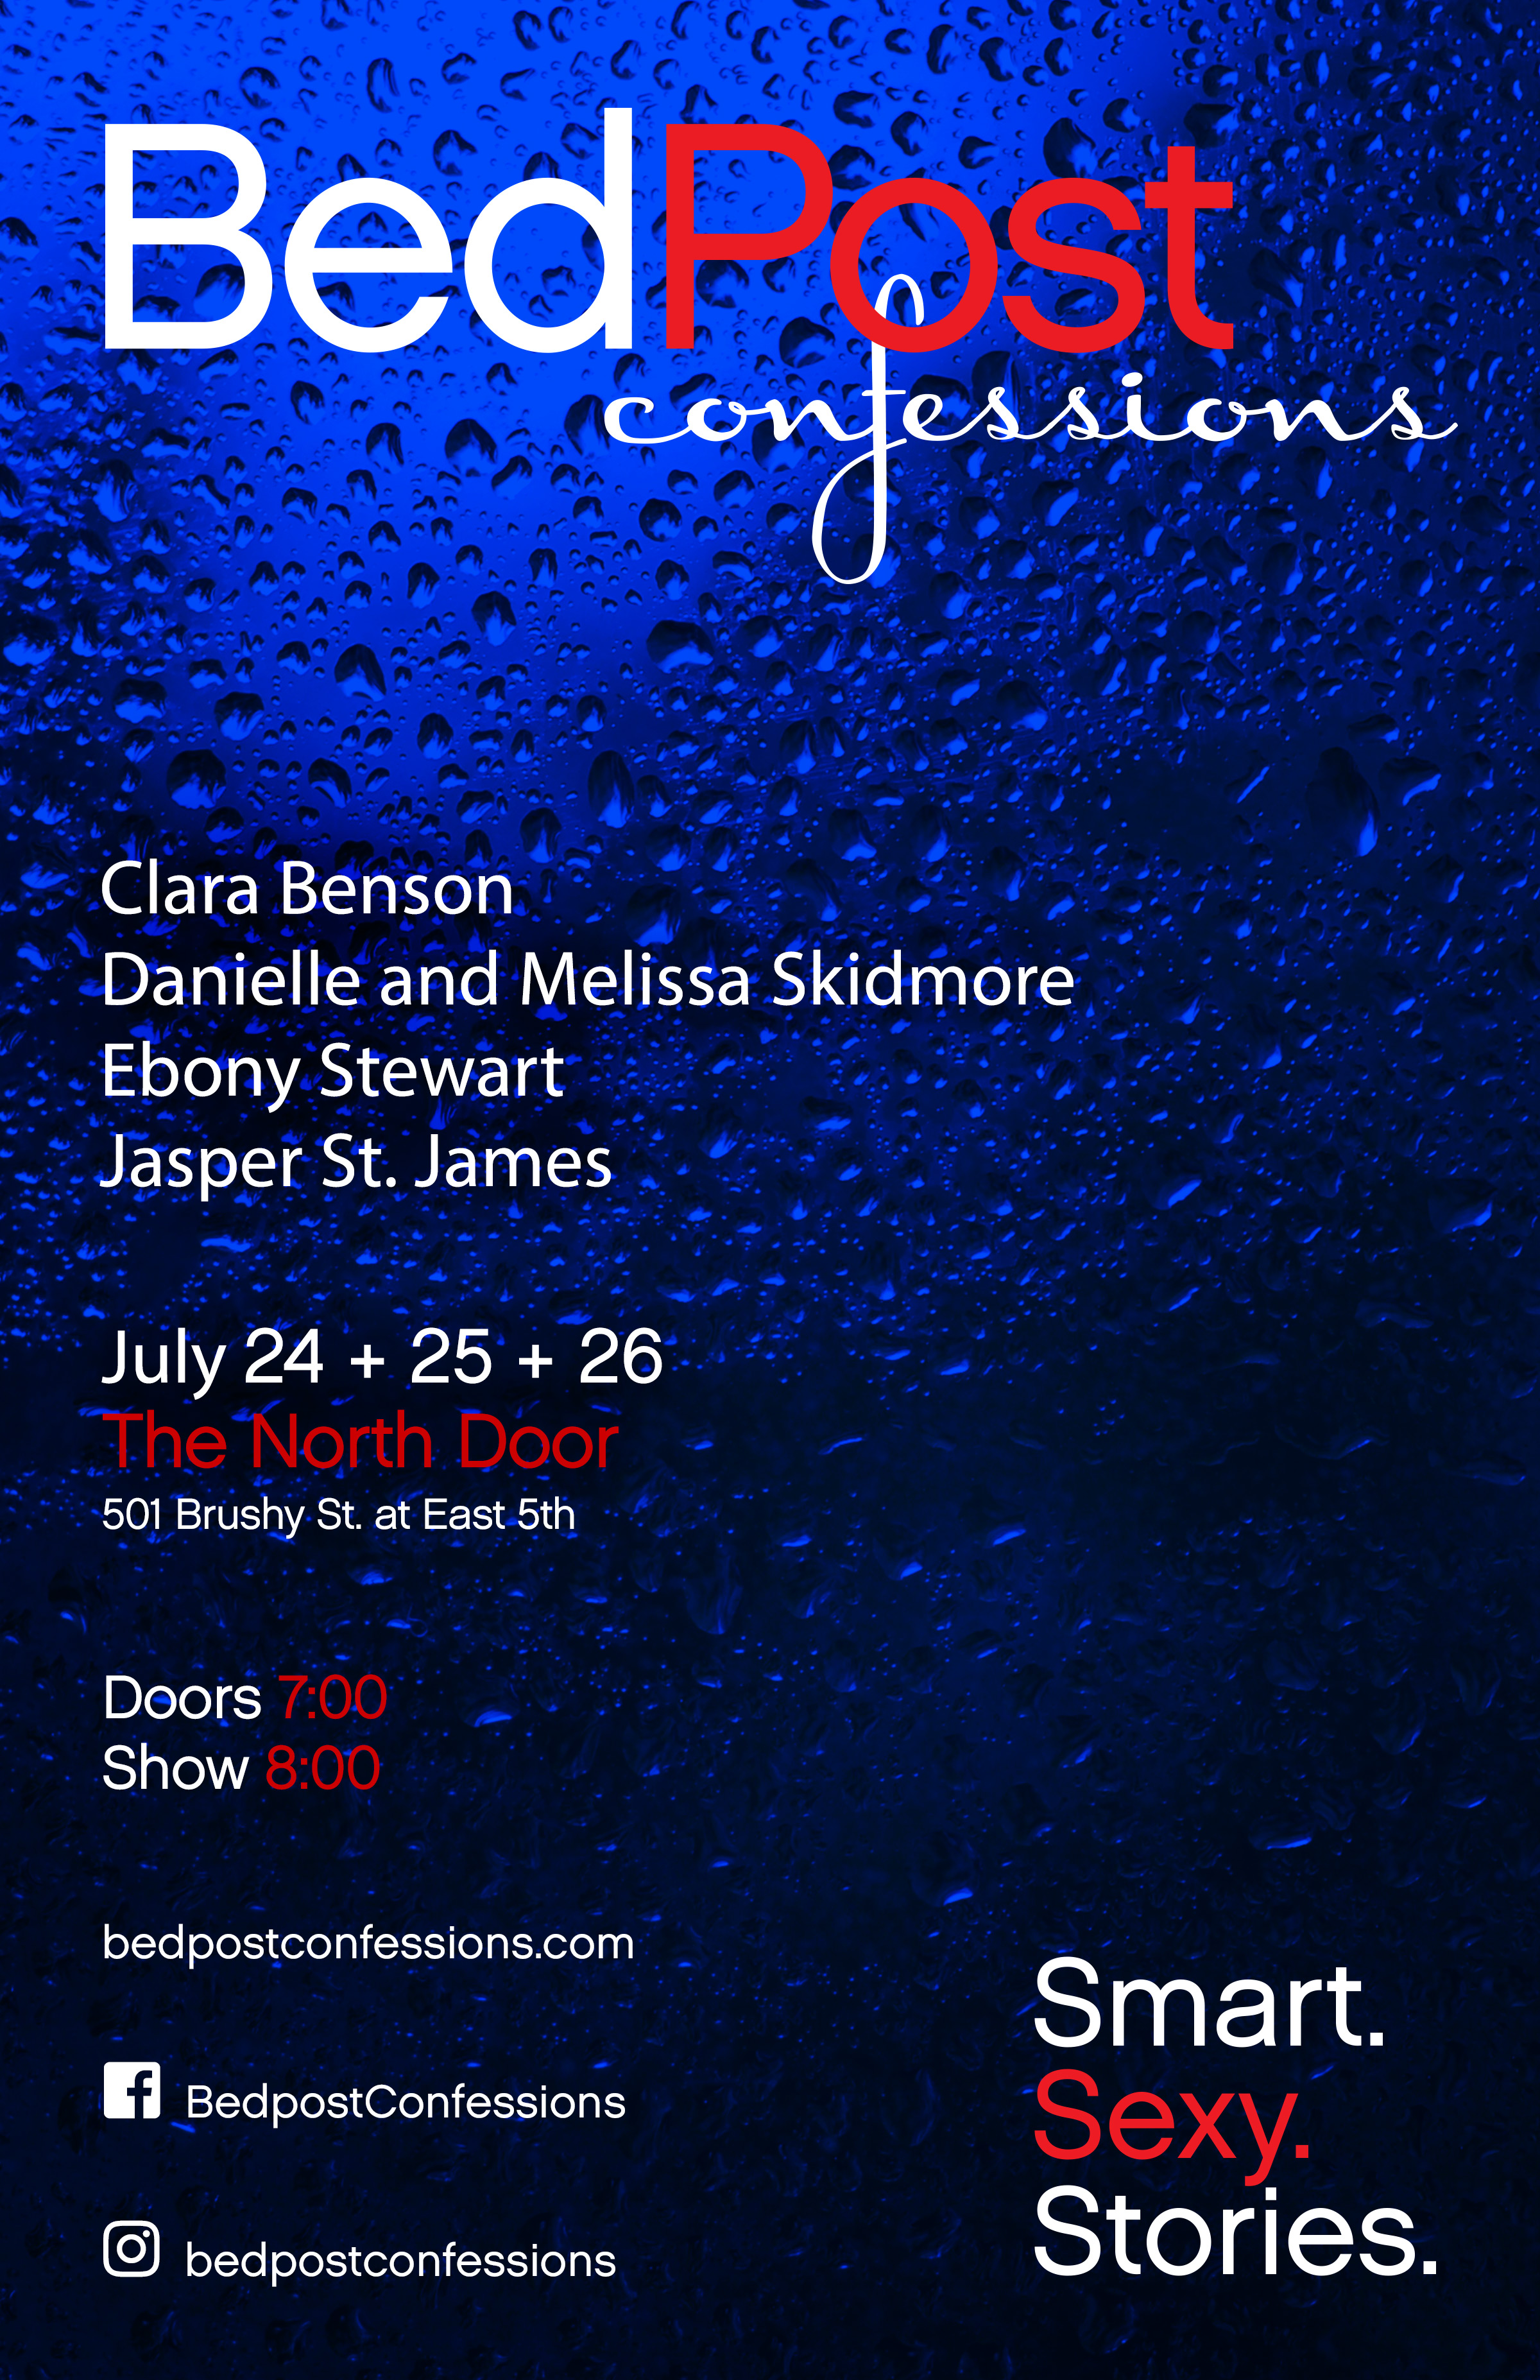 BedPost-Confessions-2019-July-Poster-Performers.jpg